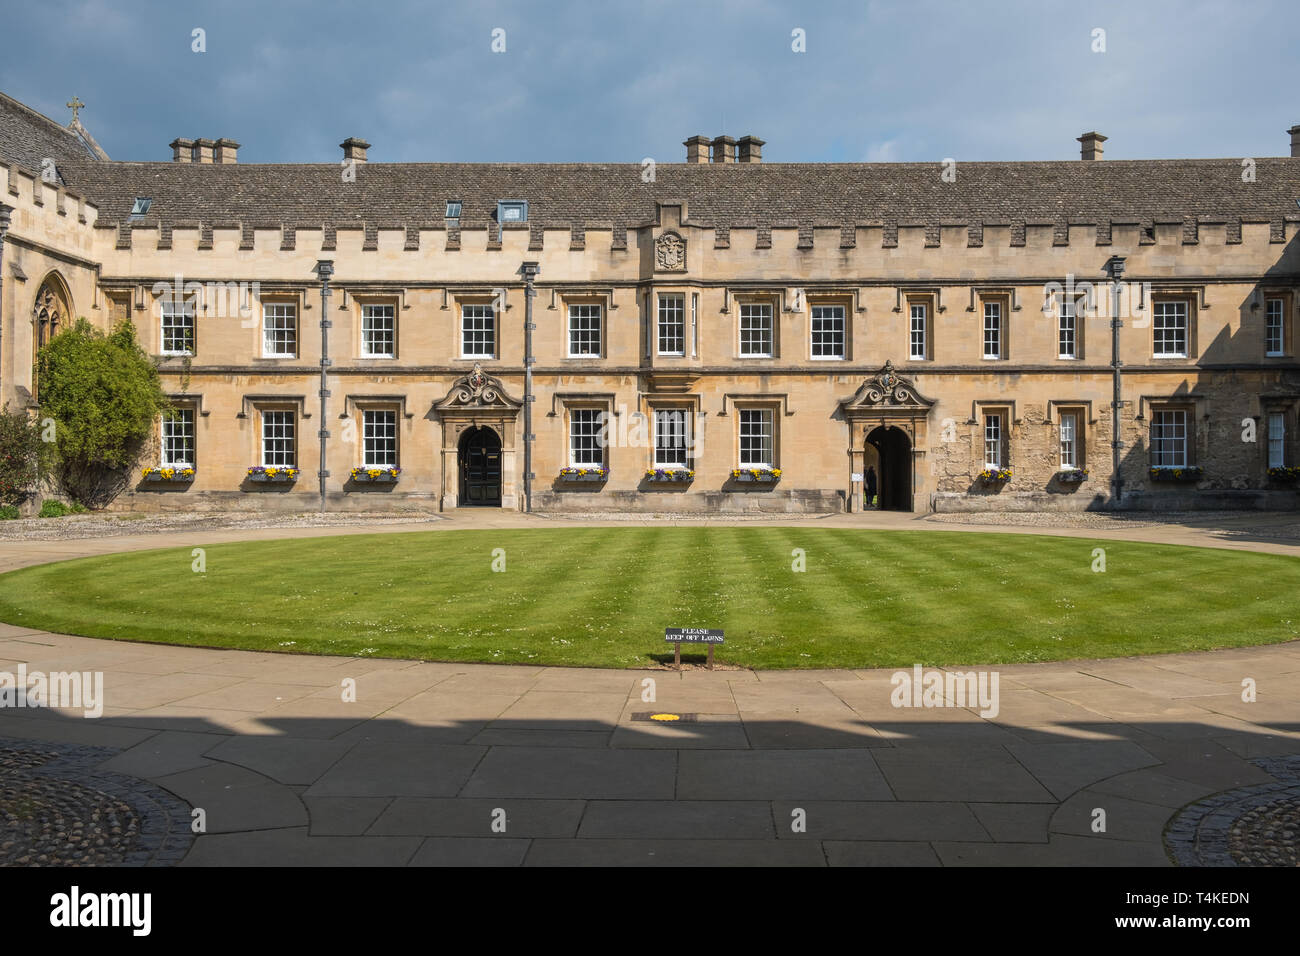 Neat circular lawn at St John's College, Oxford, UK - Stock Image